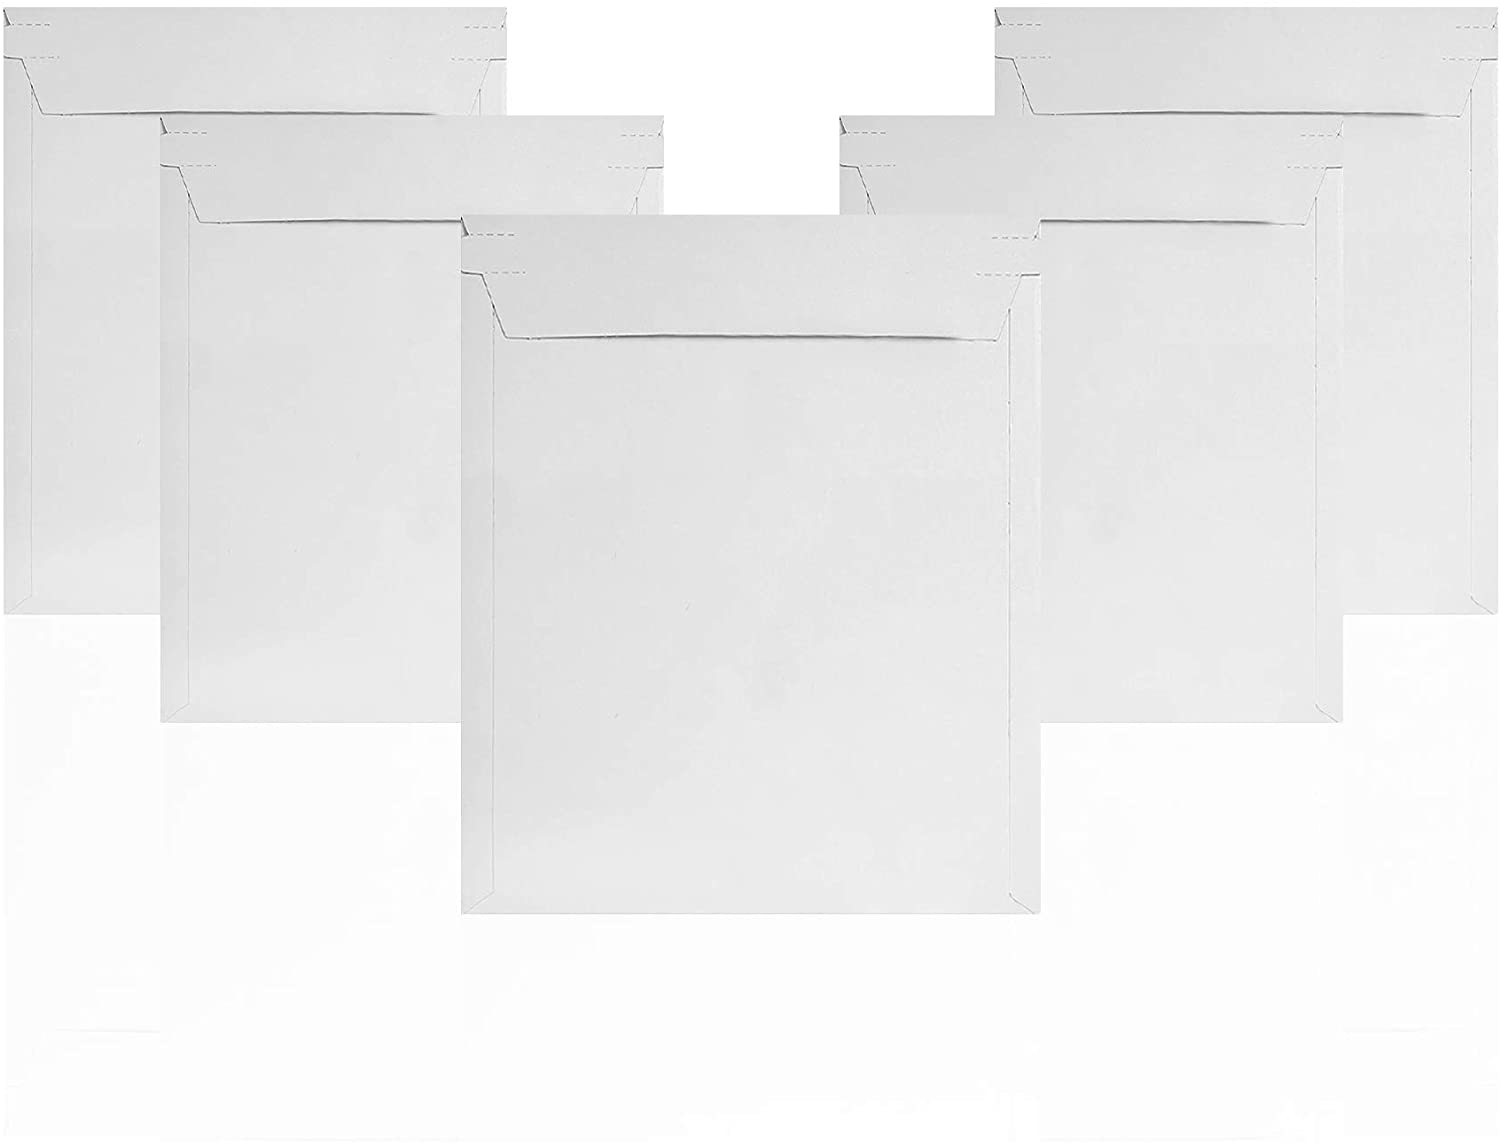 Large Card Mailers Envelopes 25cm x 35cm B4 Strong Glue Strip Books Magazines